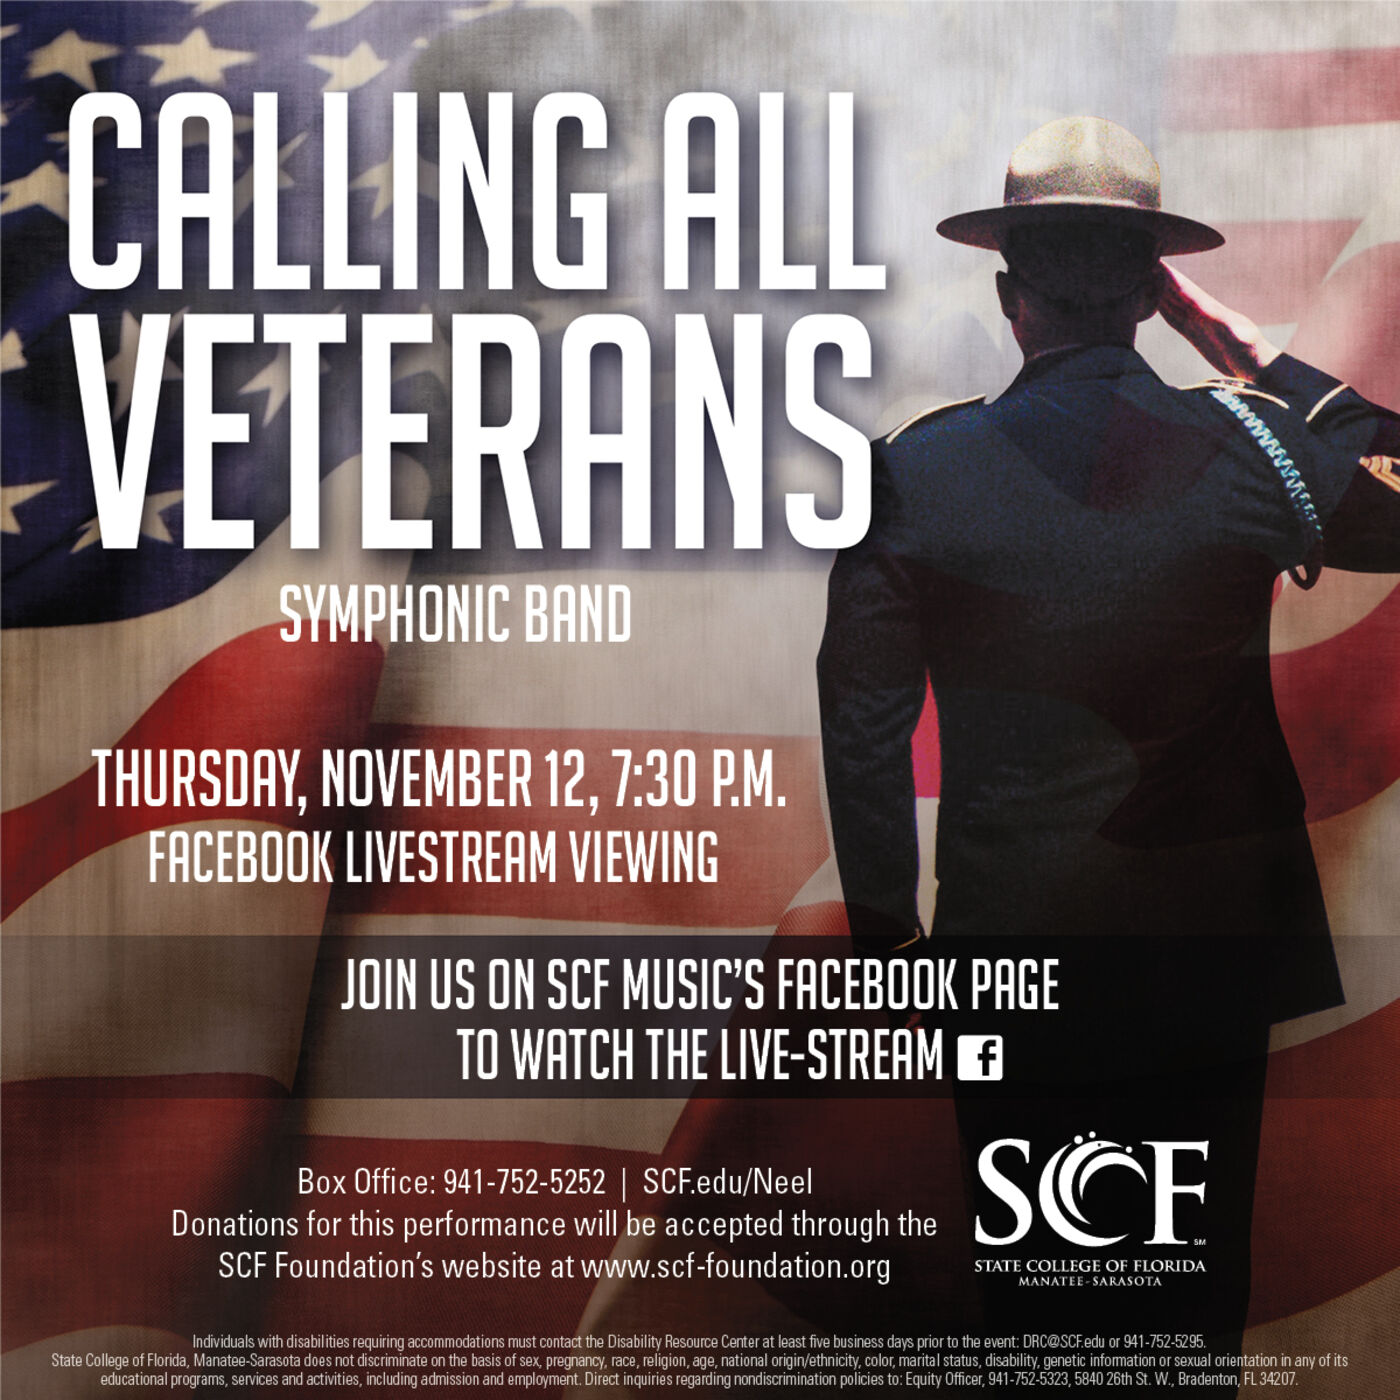 Calling All Veterans presented by the SCF Symphonic Band, Thursday, November 12, 7:30 PM-Facebook Livestream